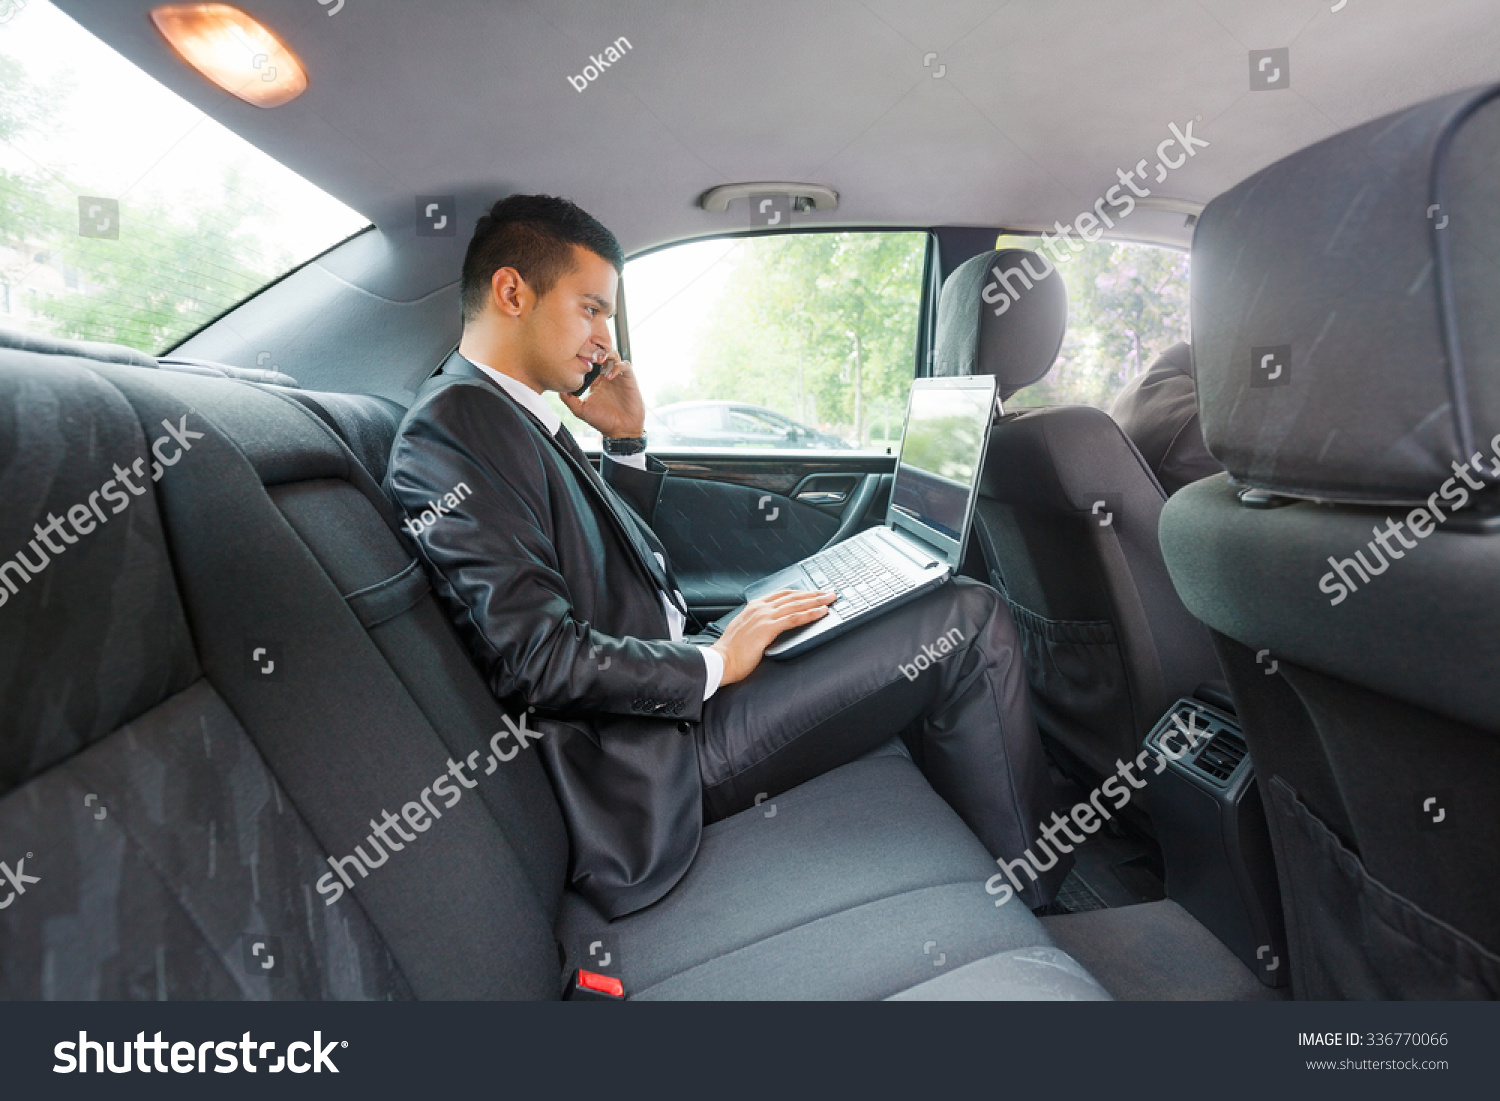 Businessman using laptop and mobile phone while commuting to work by taxi